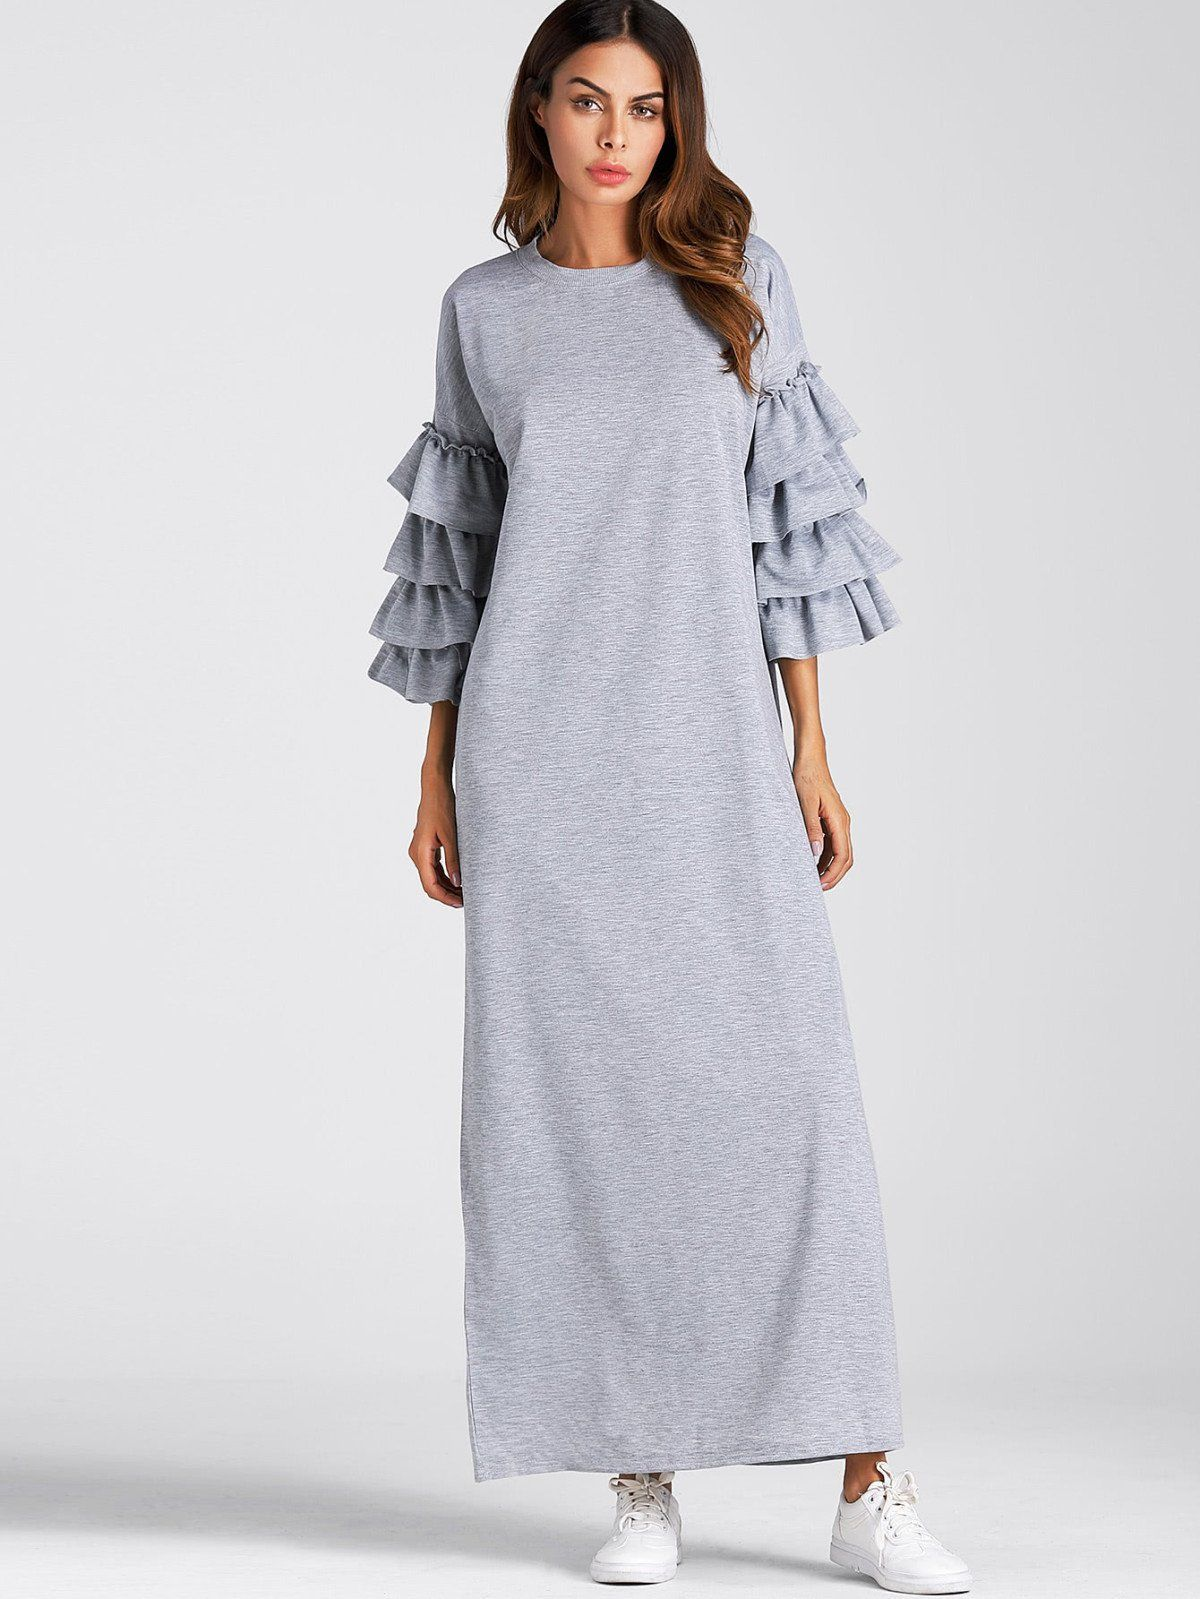 Dresses by borntowear tiered frill sleeve full length dress